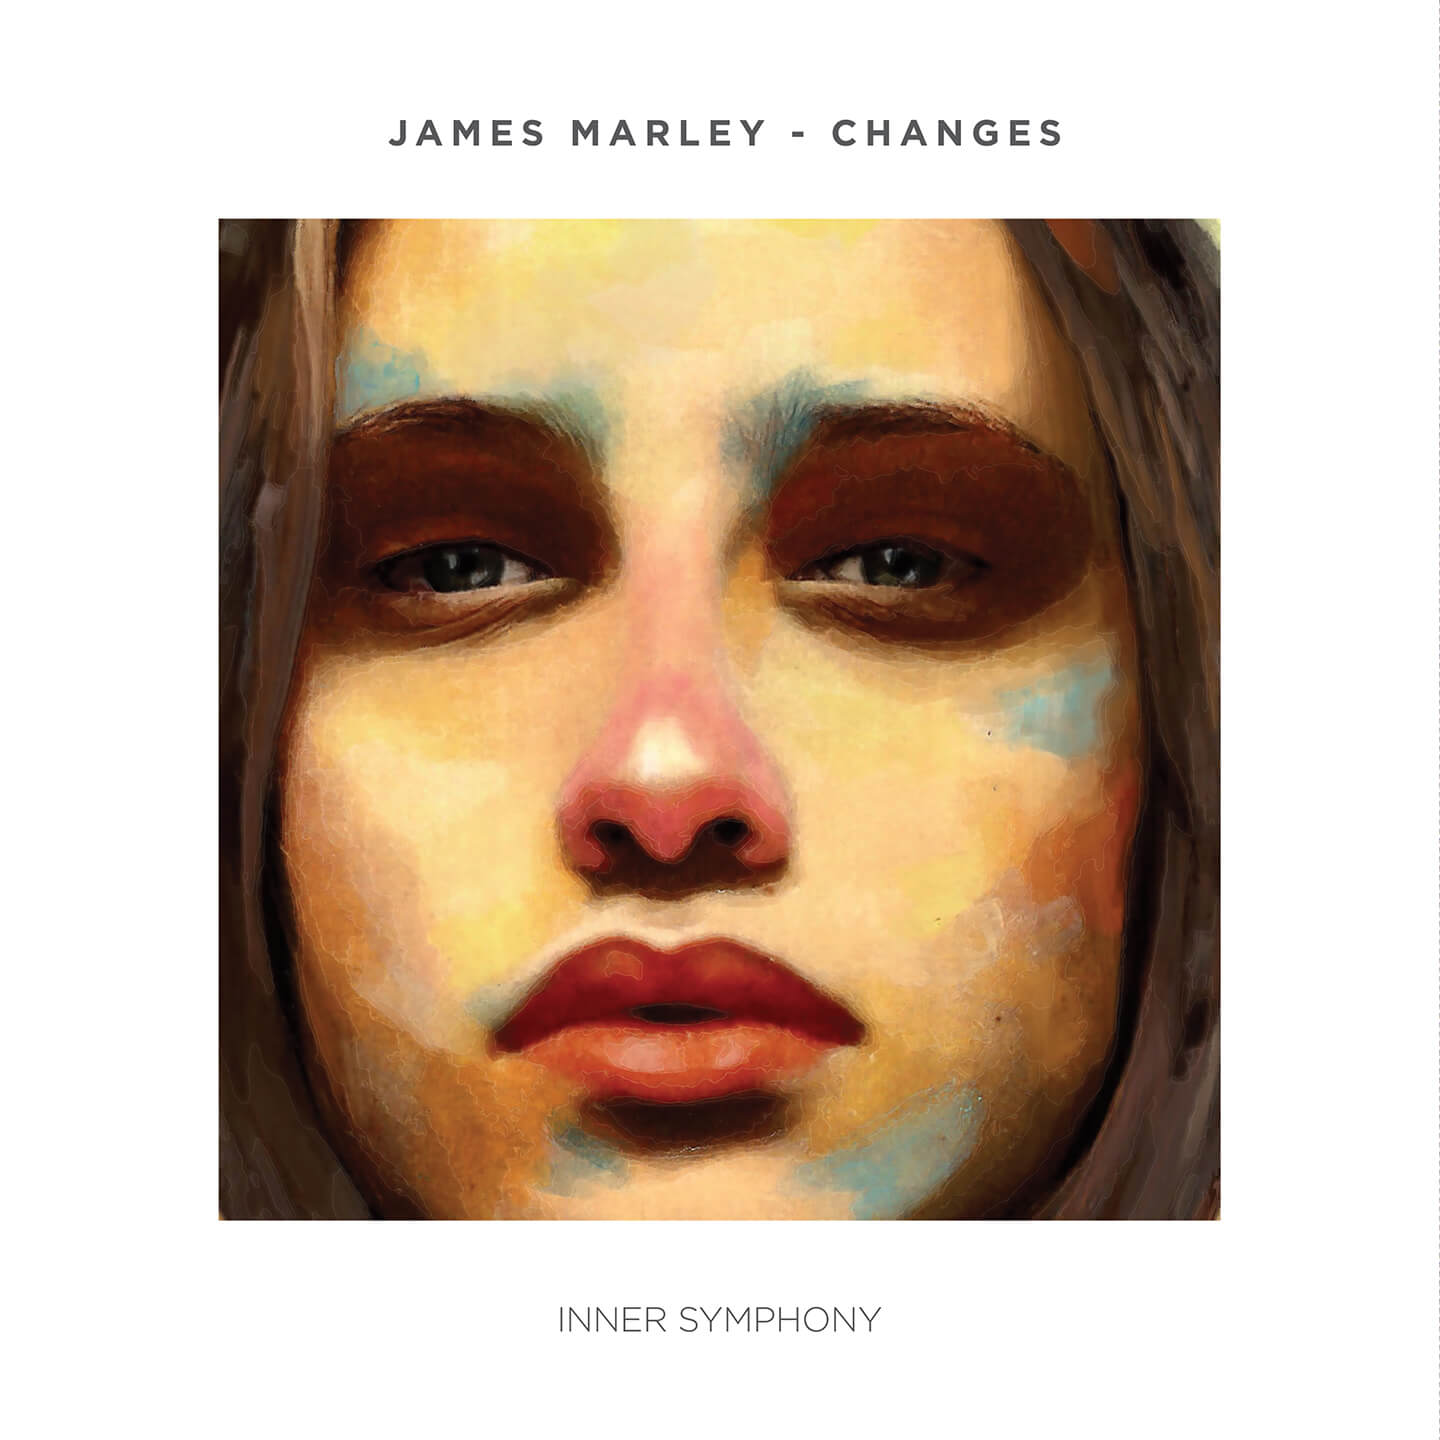 IS038 - James Marley - Changes - Inner Symphony